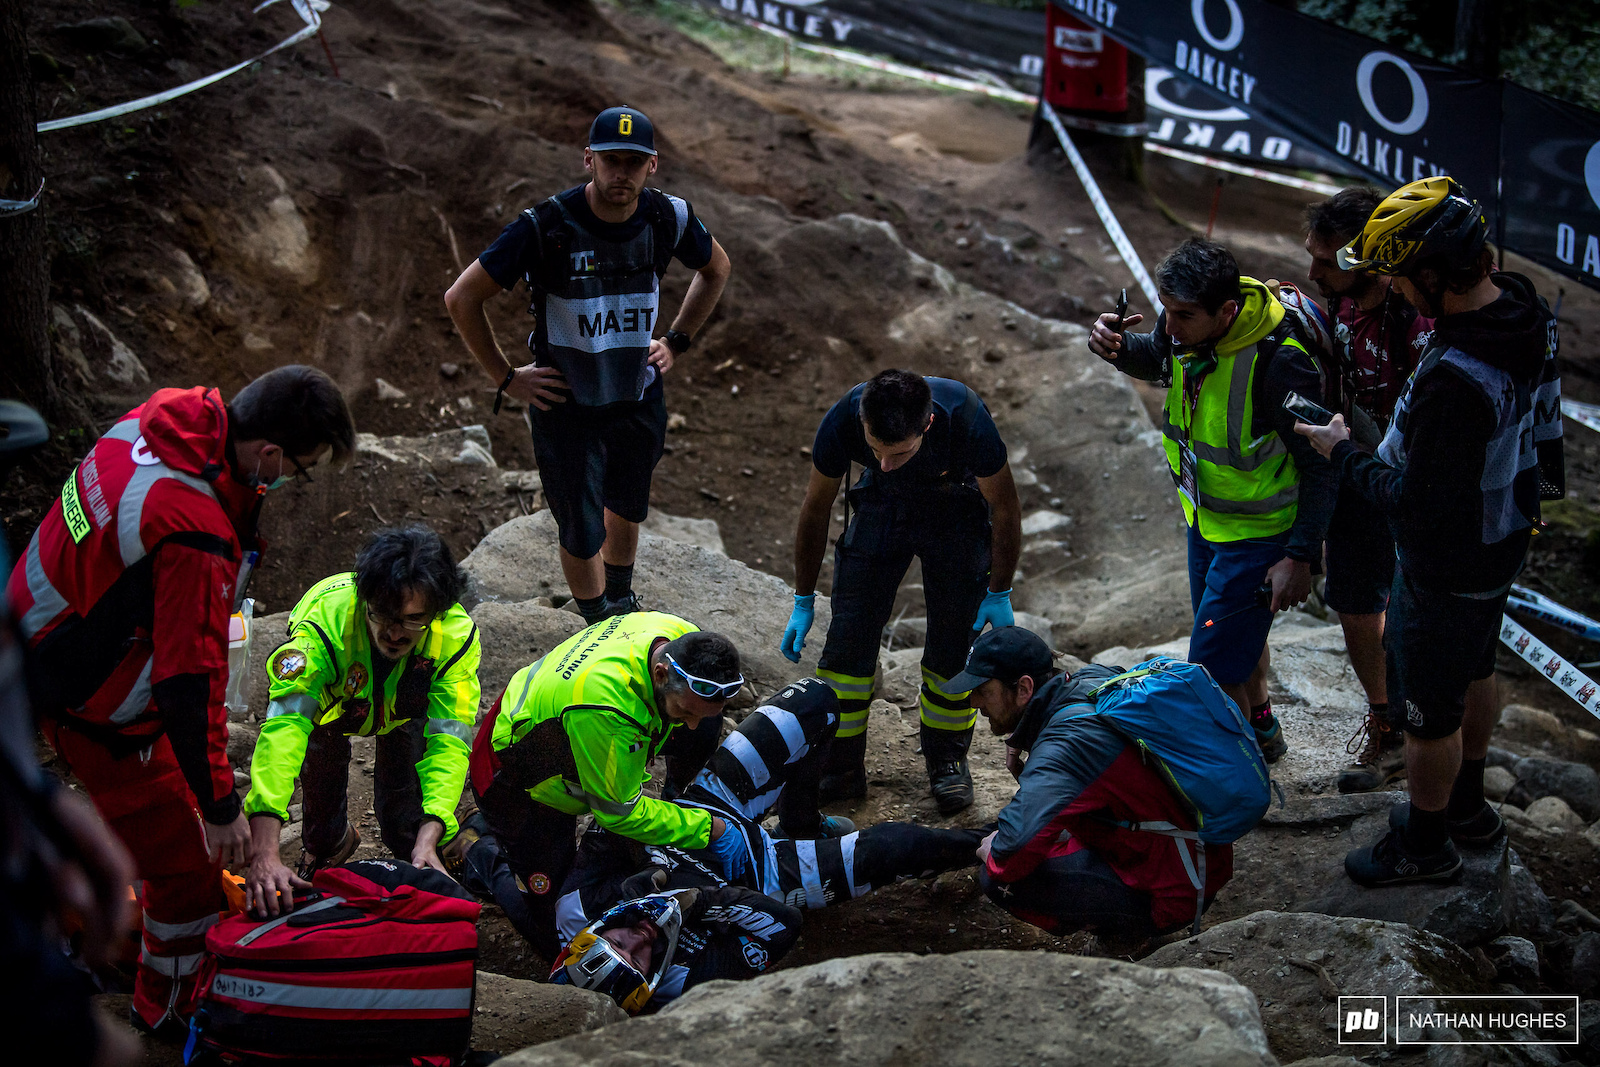 Disturbing scenes but already Brook was telling medics to let him up because he was okay.